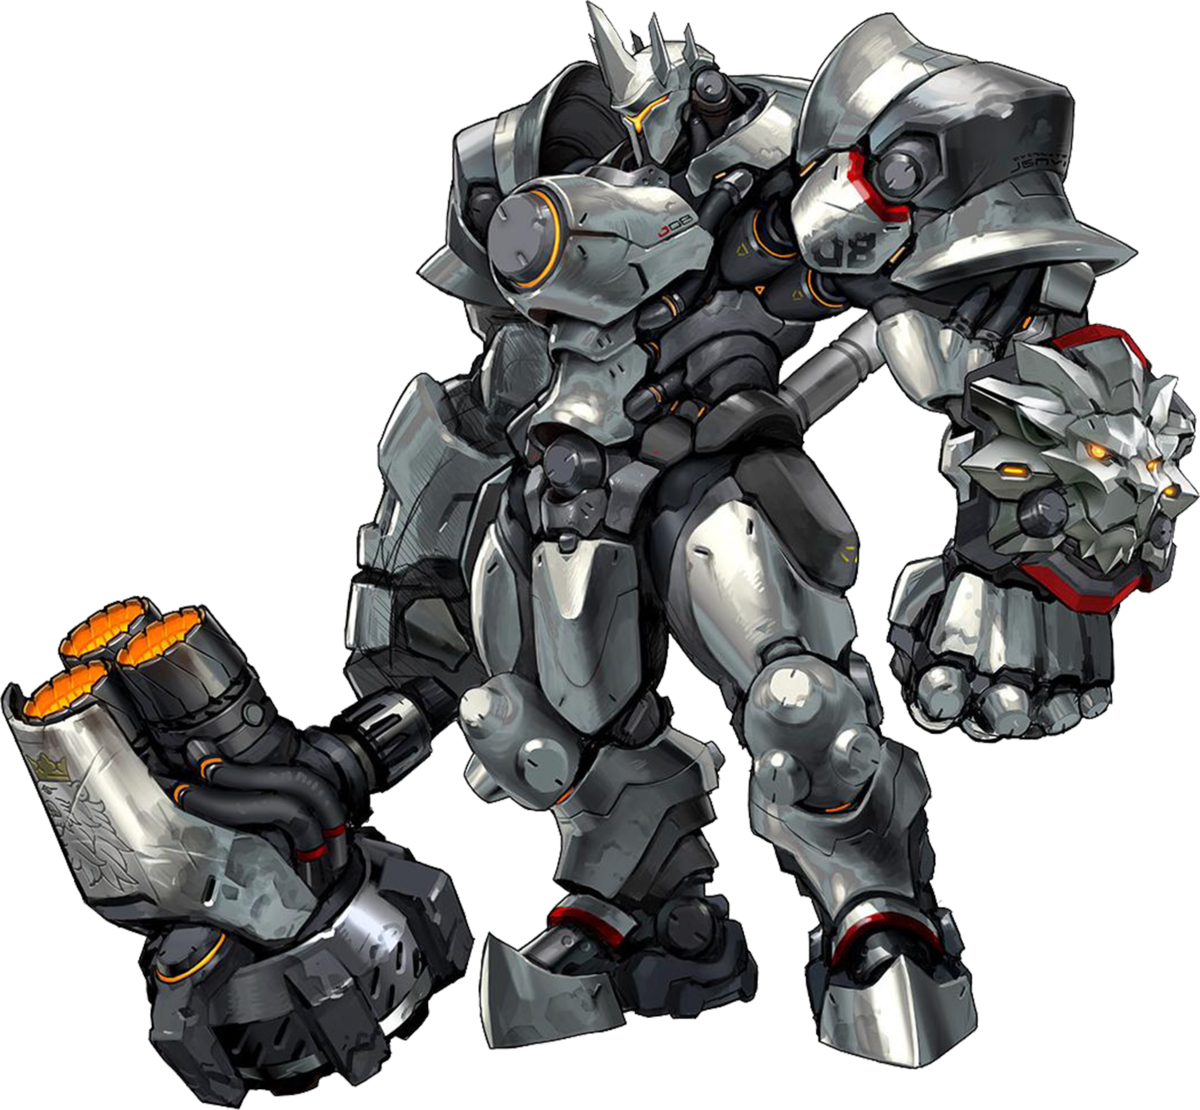 Reinhardt cute spray png. Overwatch wiki